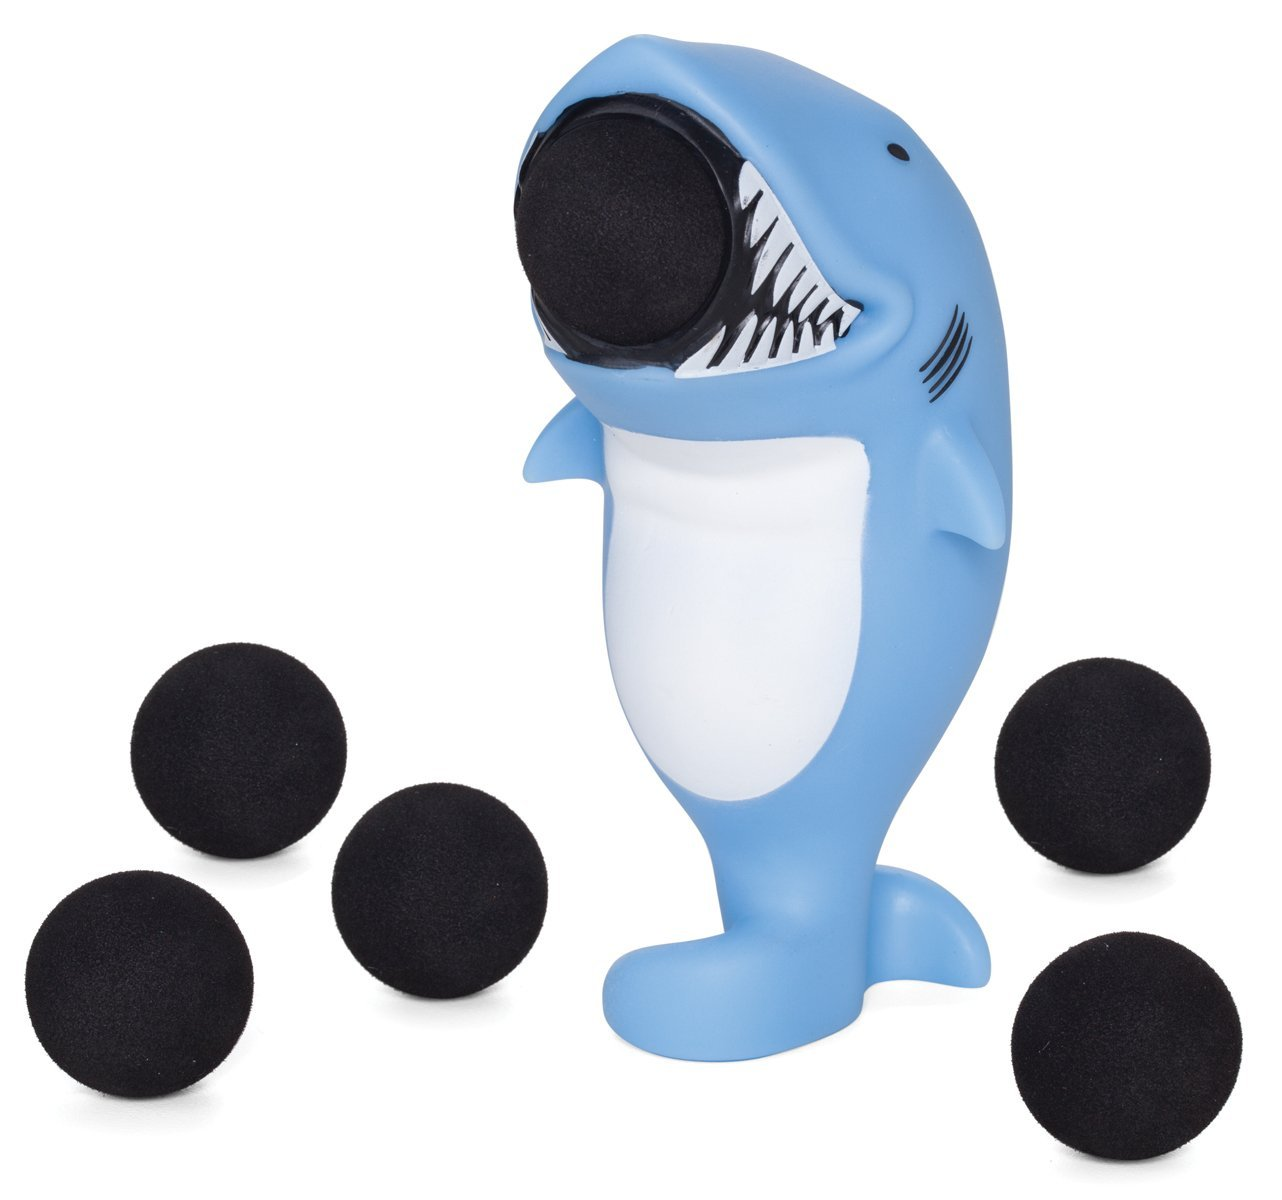 Shark popper toy for shark week